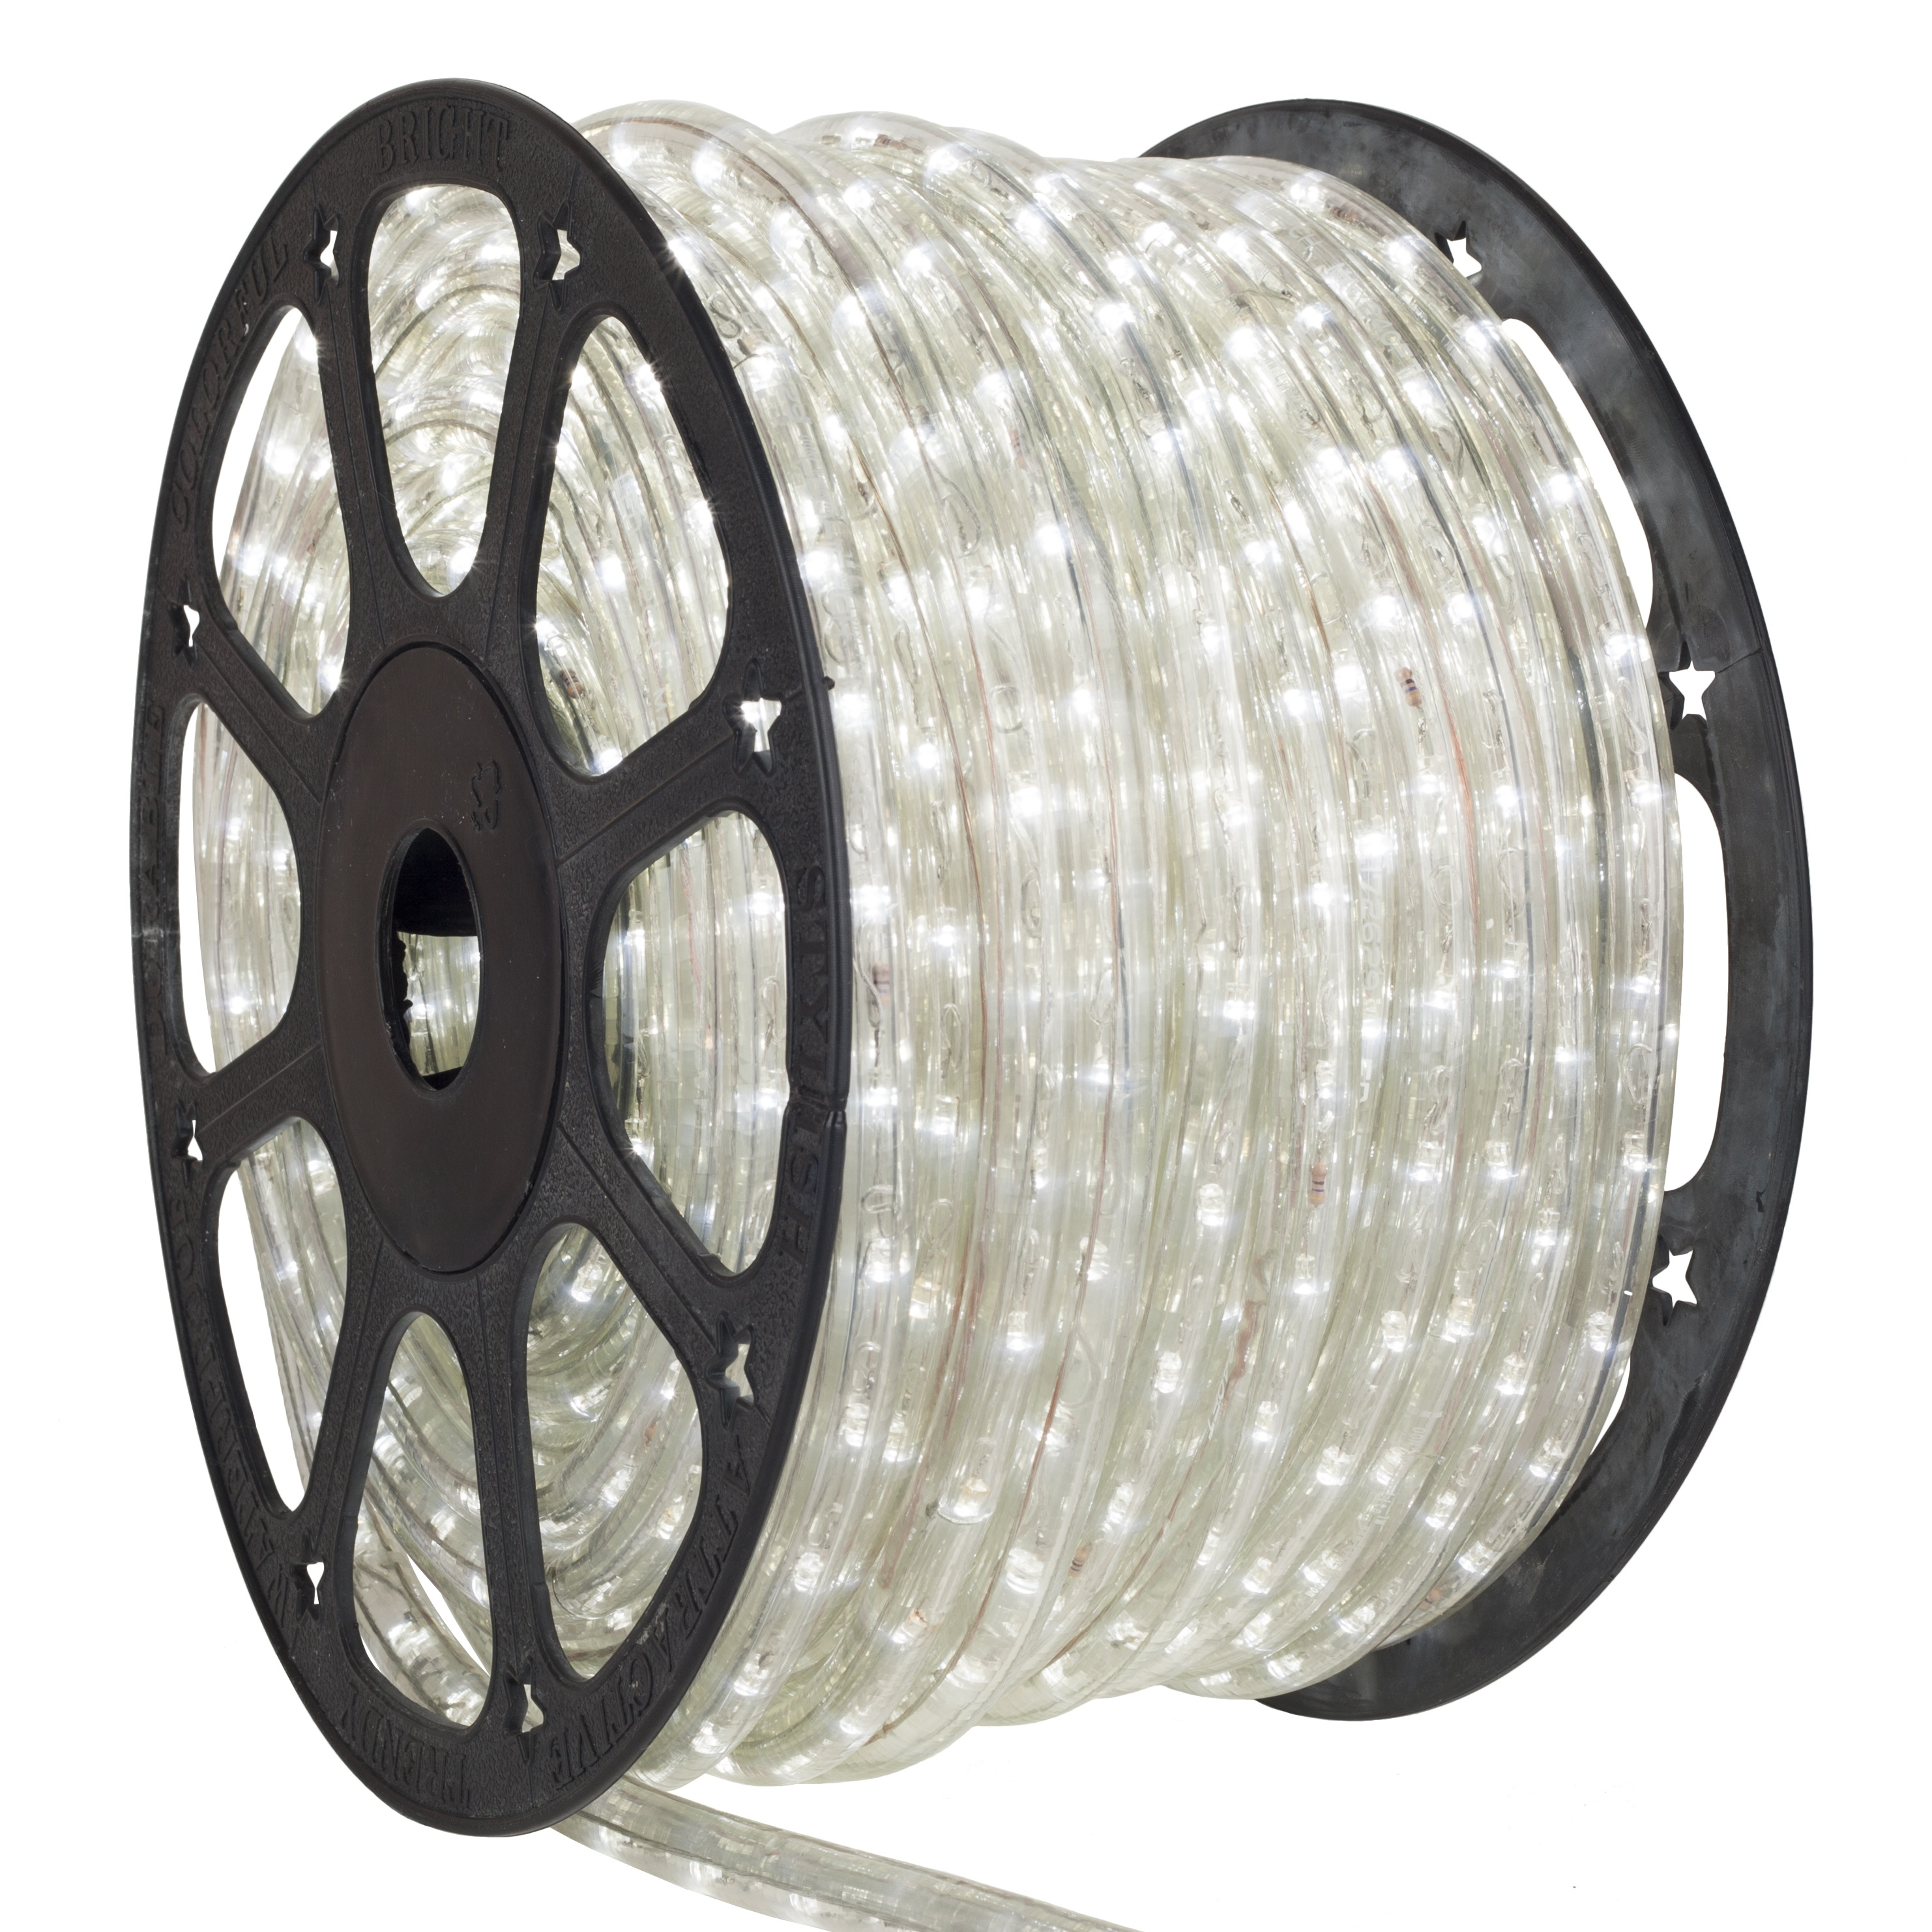 Cool White LED Rope Light 12V Spool